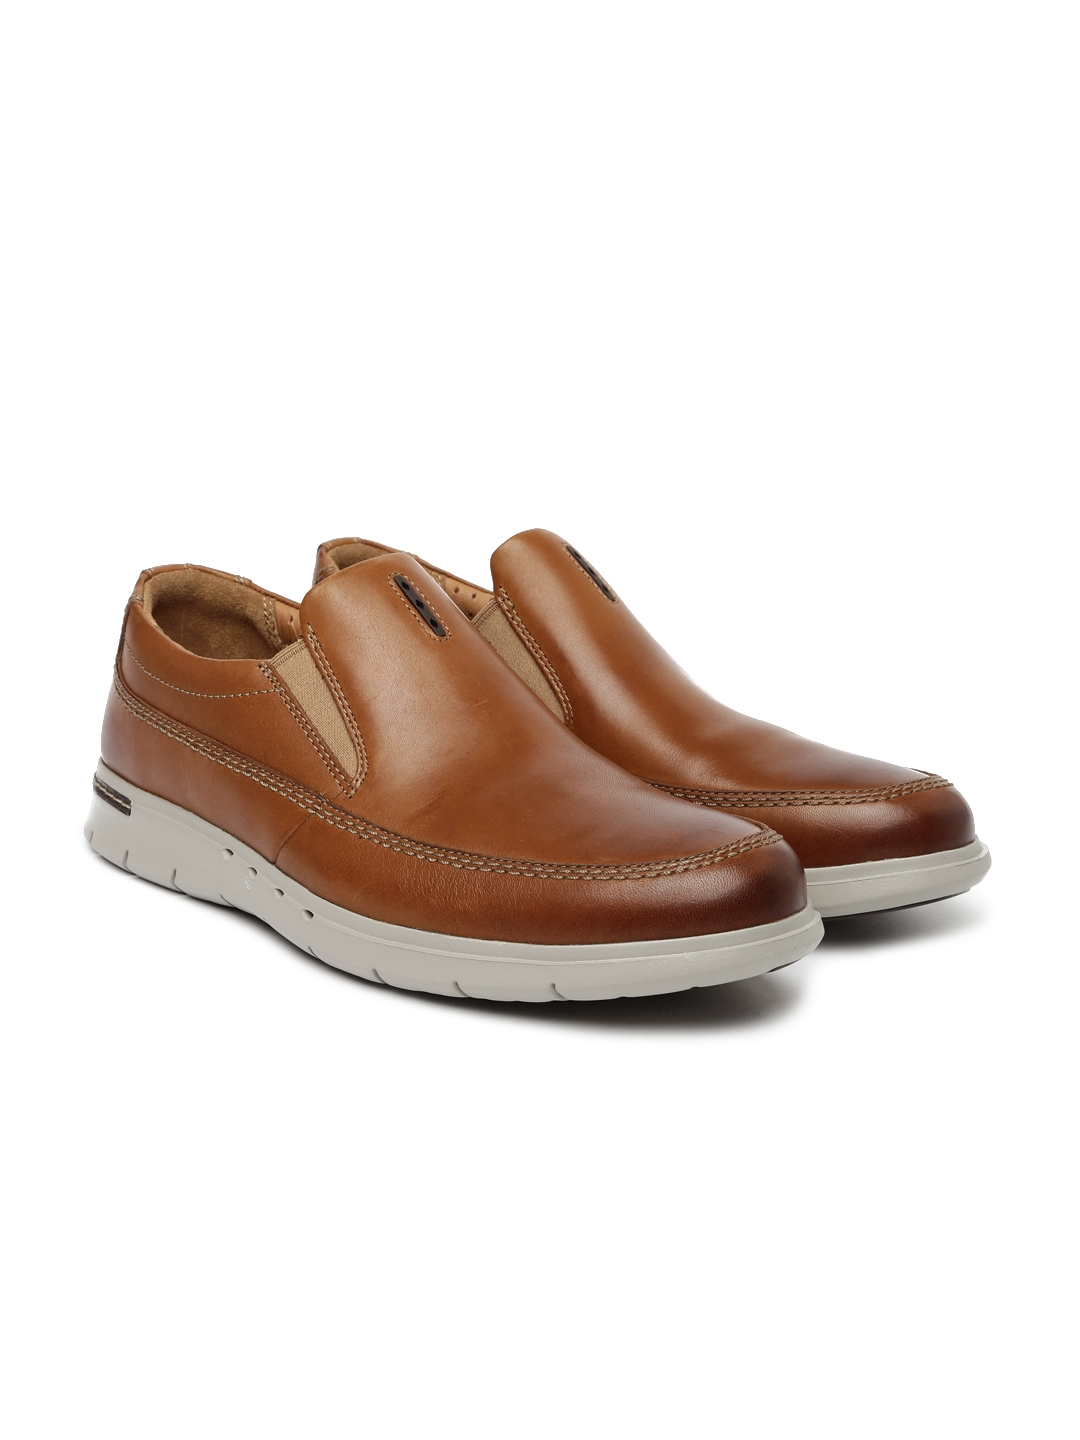 c8a174a45c48 Clarks Unstructured Men Tan Brown Easy Leather Unbyner Slip-On Sneakers